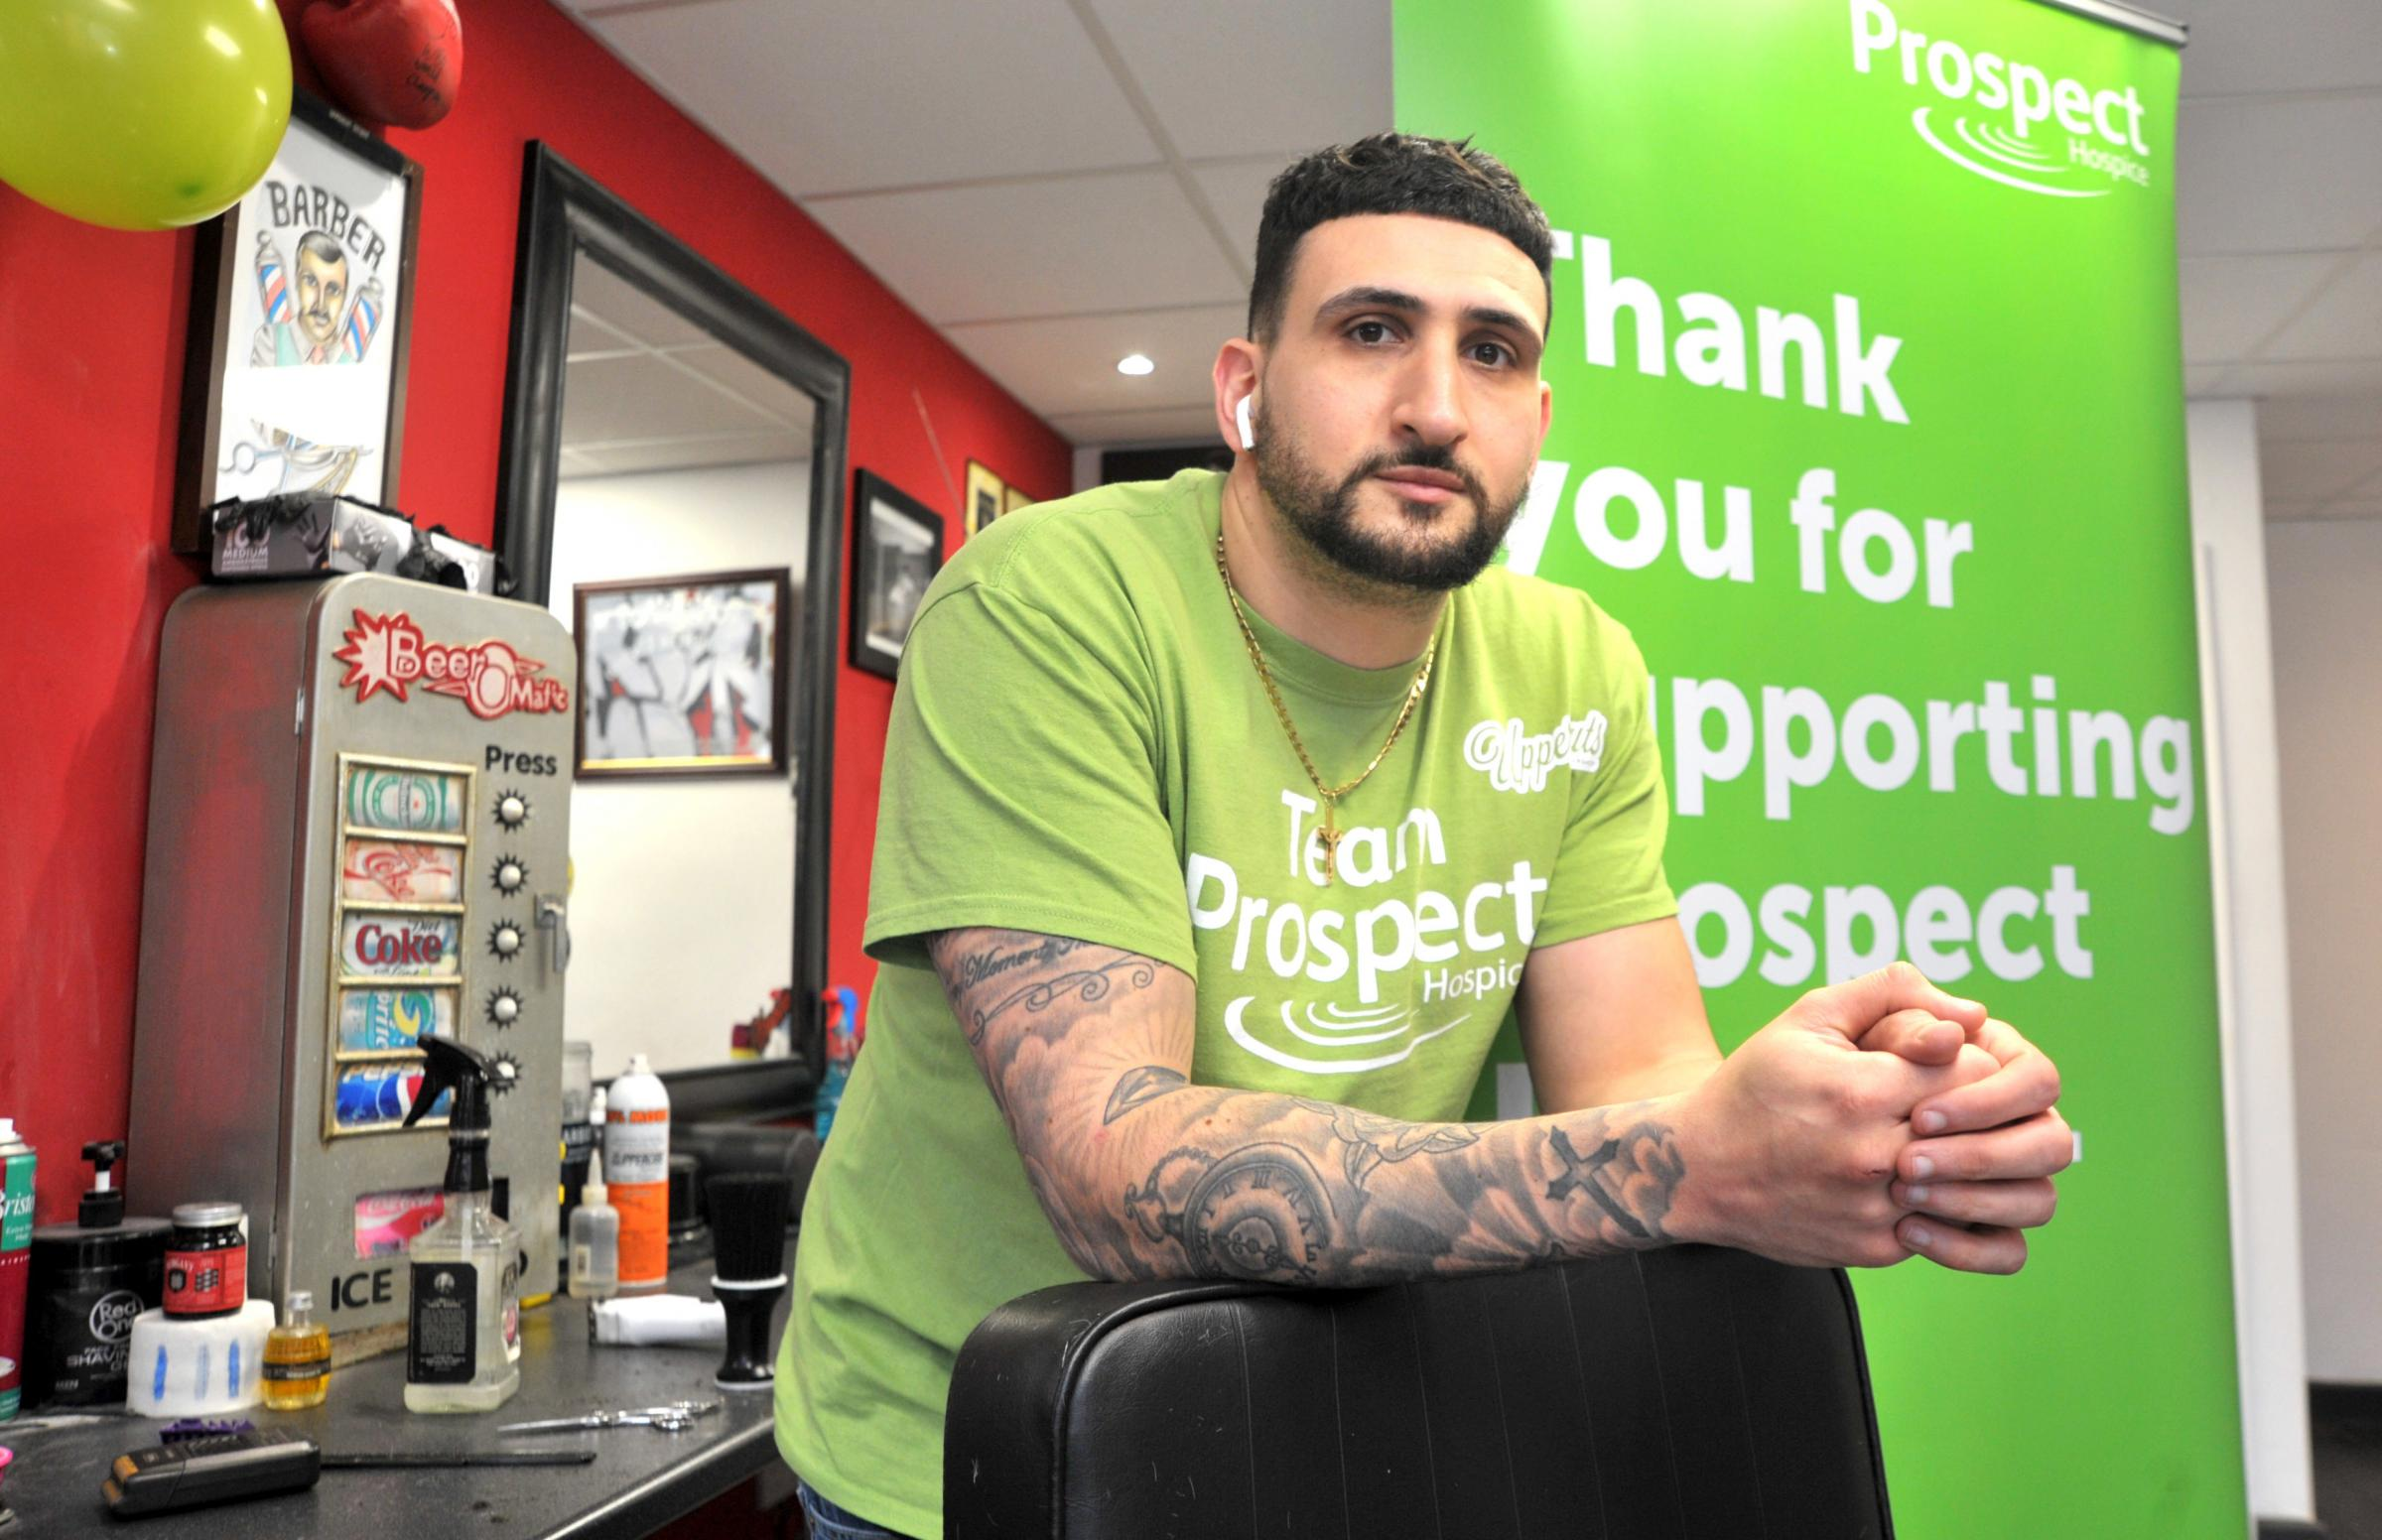 Uppercuts Barbershop and Imagine Cruising team up to raise money for Prospect Hospice